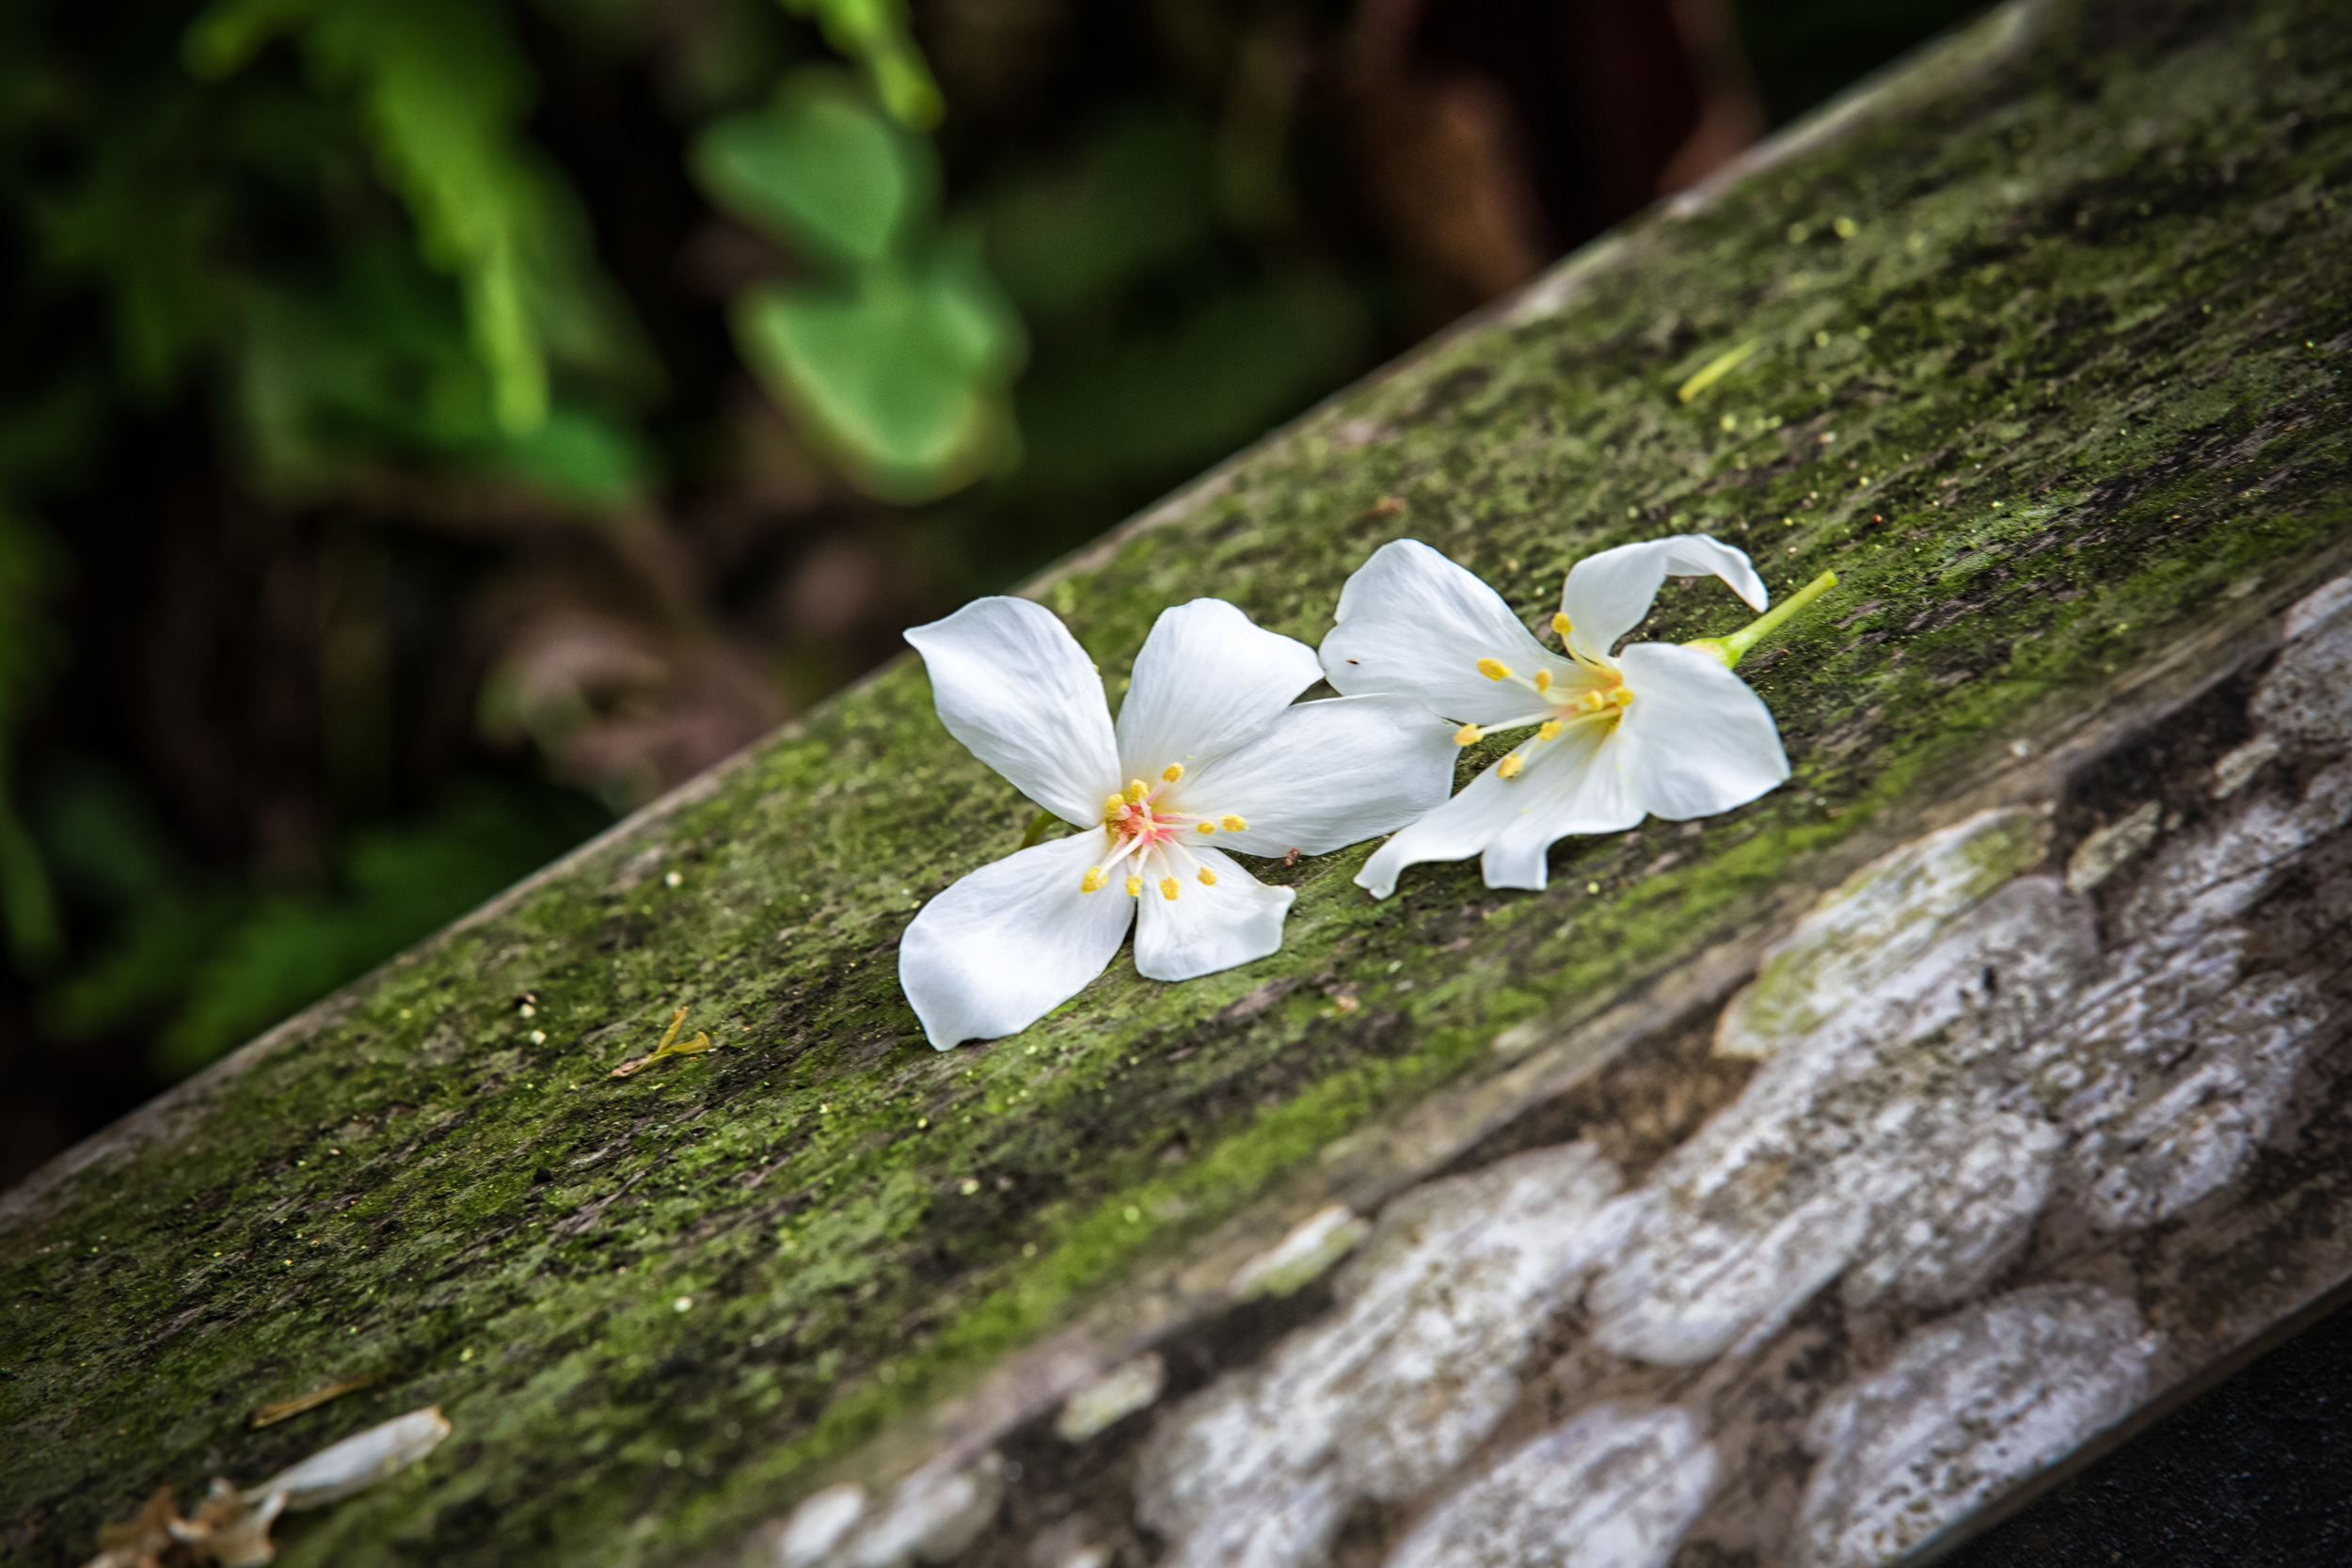 Tung Blossoms that have fallen on a hand rail.